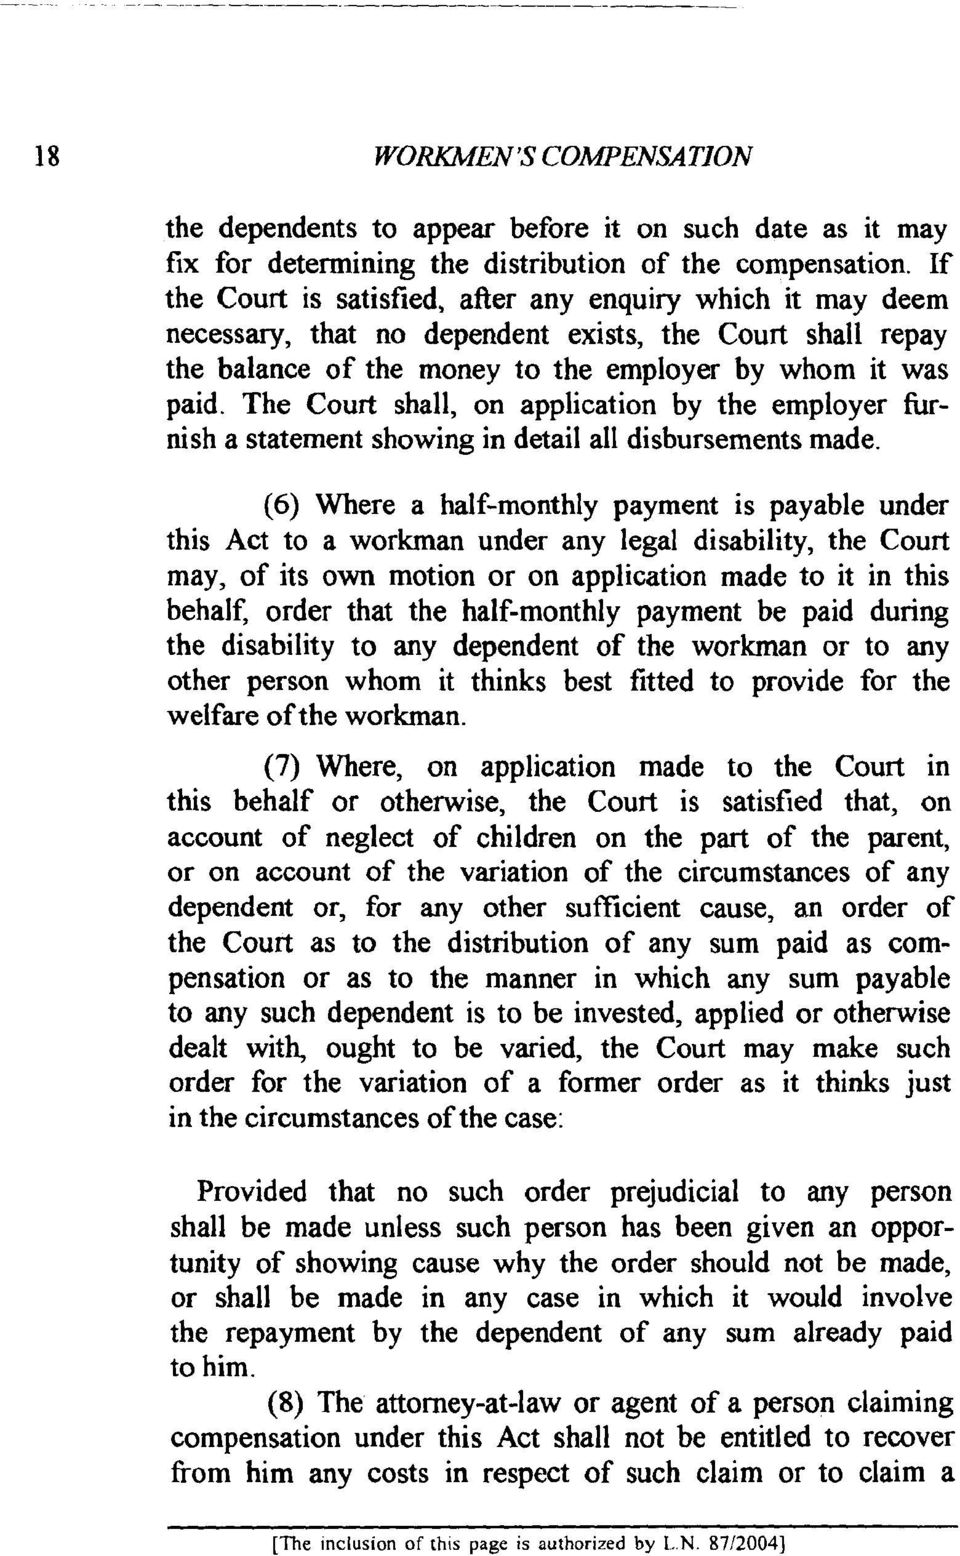 The Court shall, on application by the employer hrnish a statement showing in detail all disbursements made.